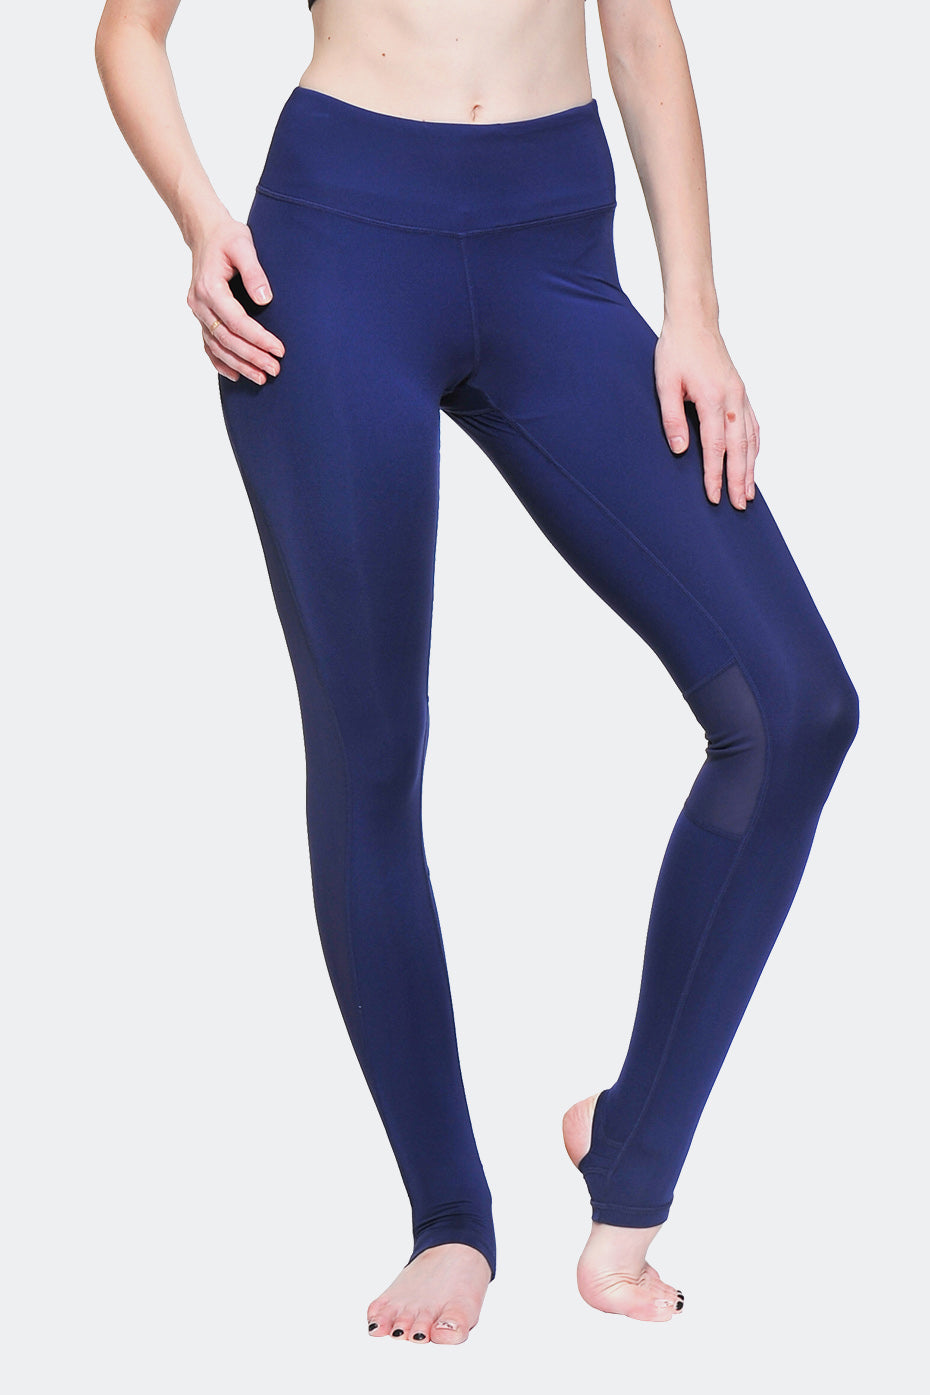 Ongasoft Yoga Pants-K0009Blue-Front